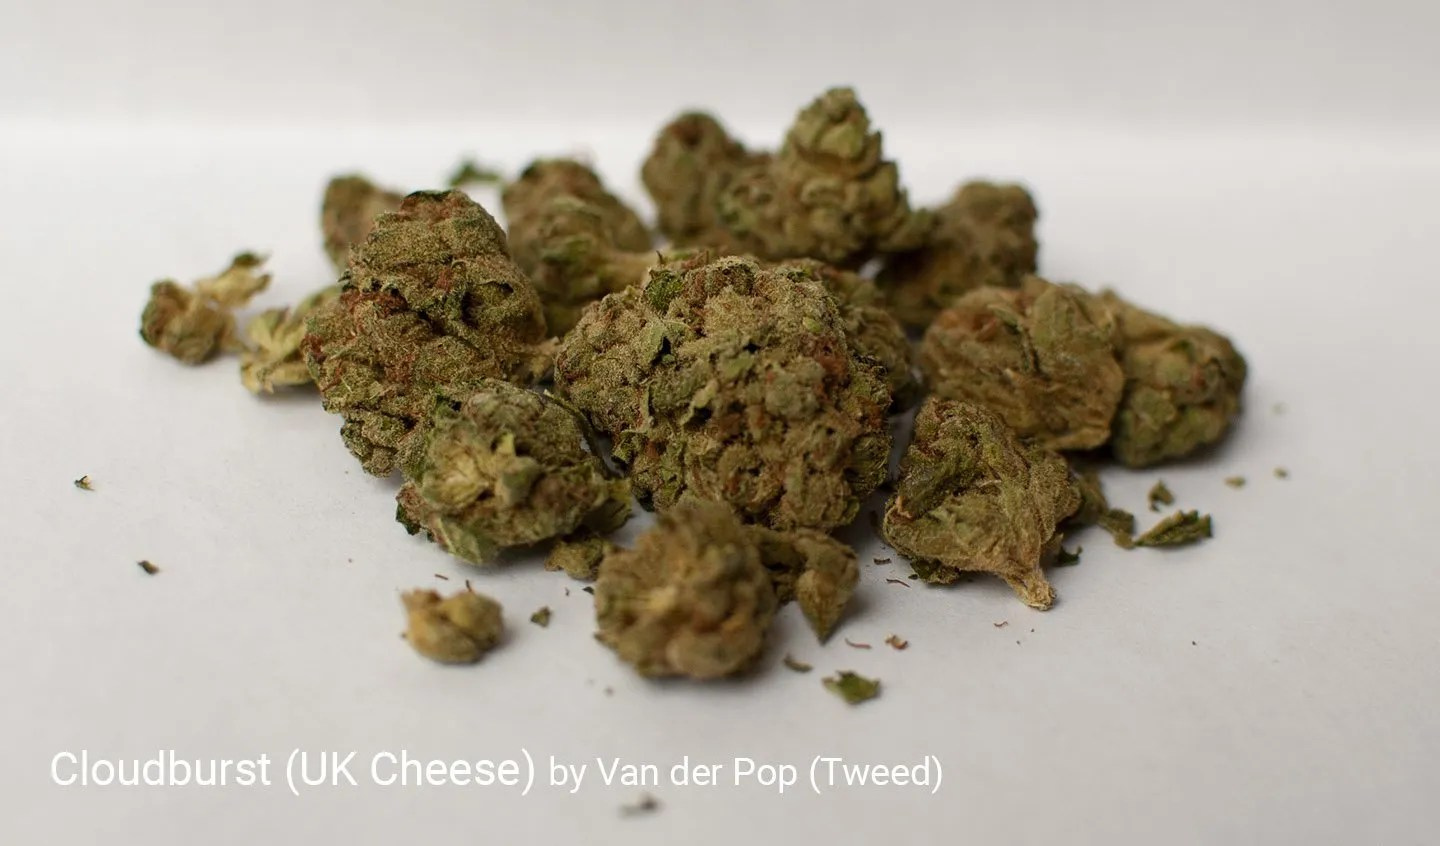 Cloudburst aka UK Cheese